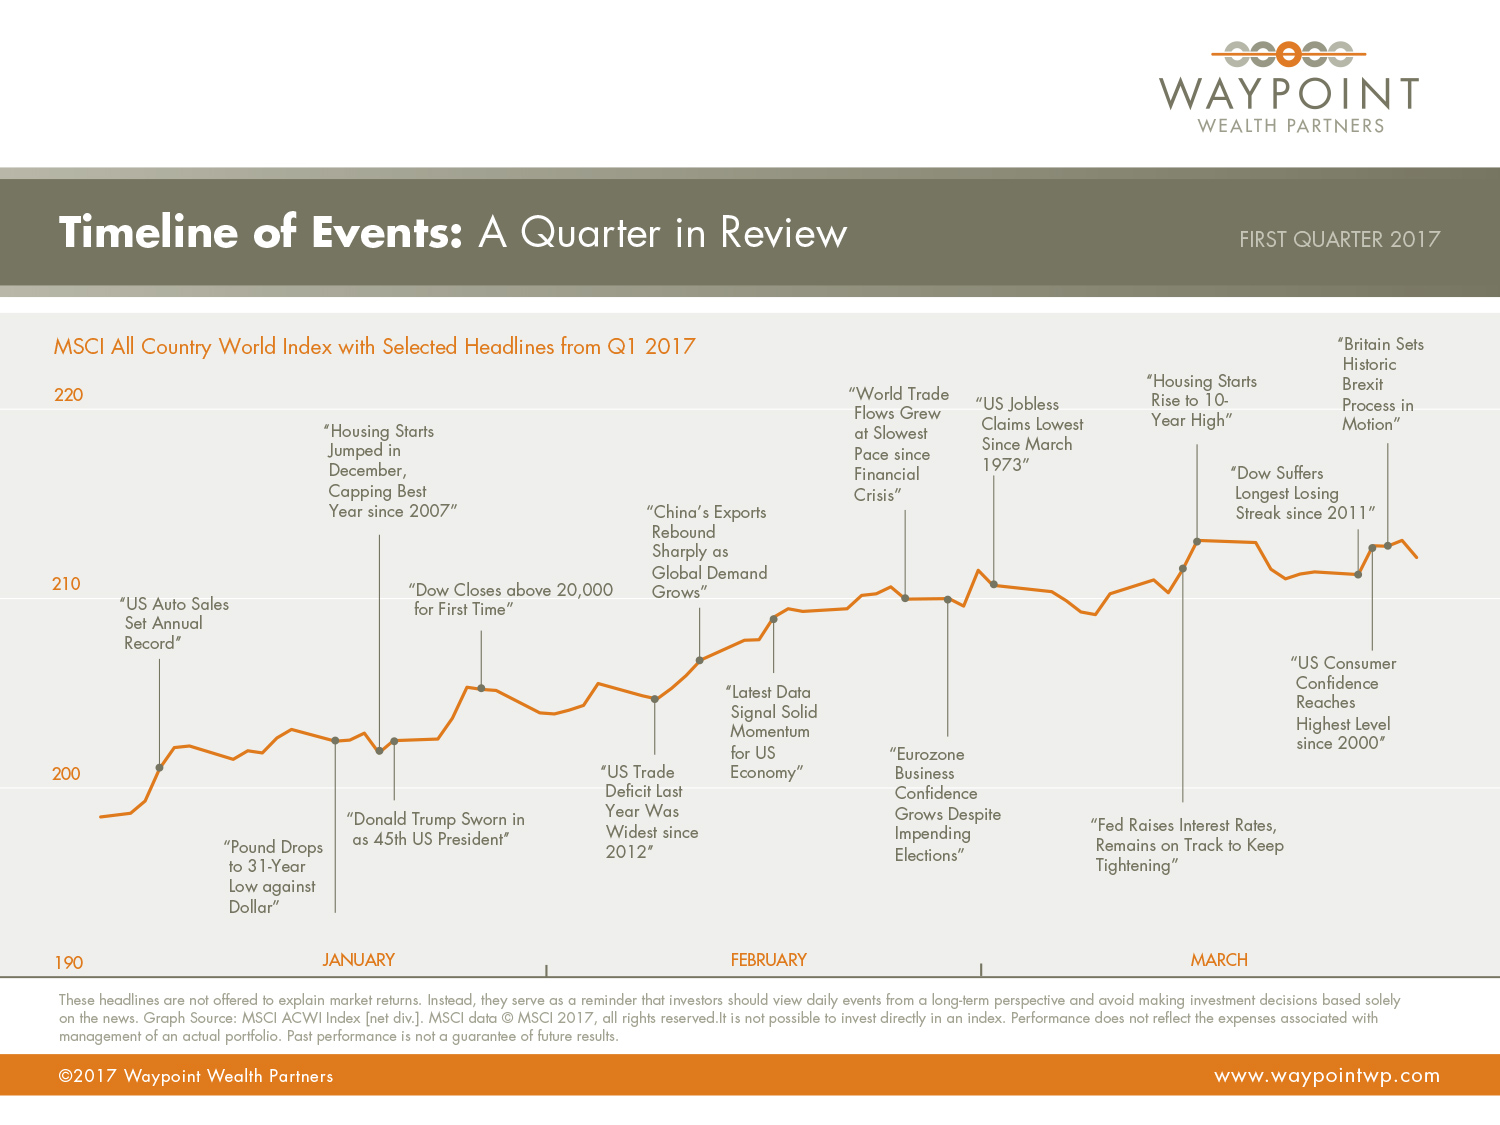 WWP-QMR-Q1-2017-Timeline-of-Events.jpg